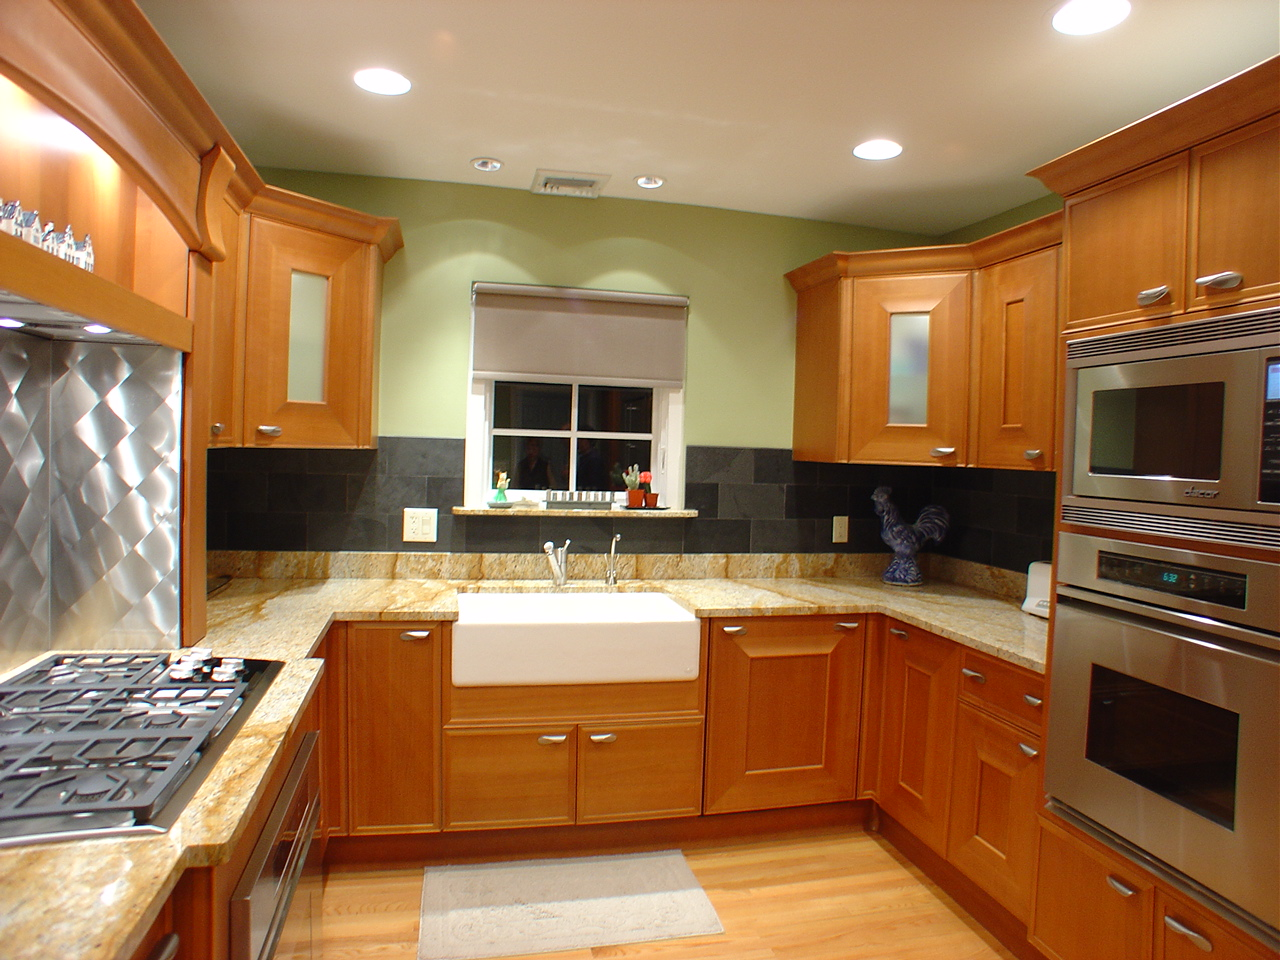 Kitchen Design Room Modern Kitchen Design Remodel Long Island And New York City Ny